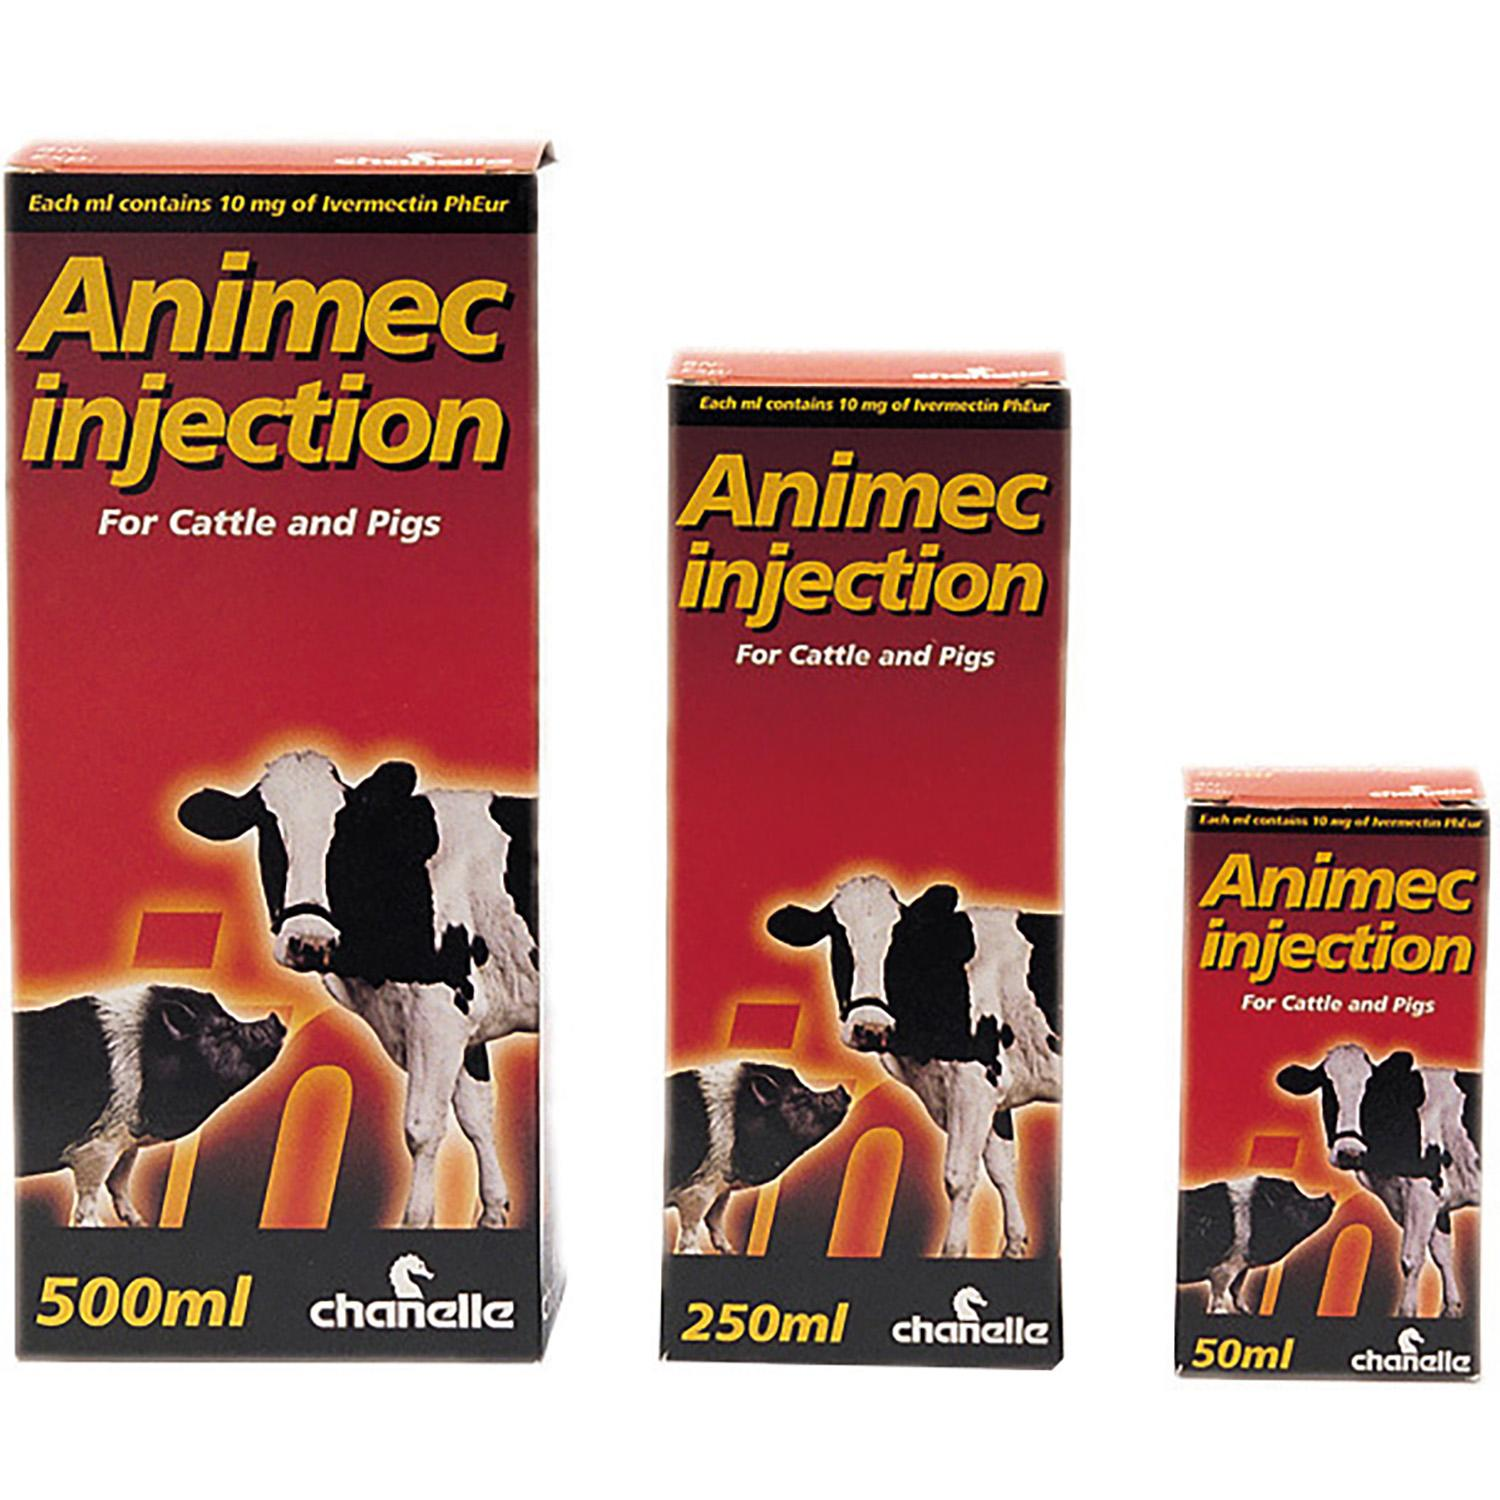 ANIMEC INJECTION